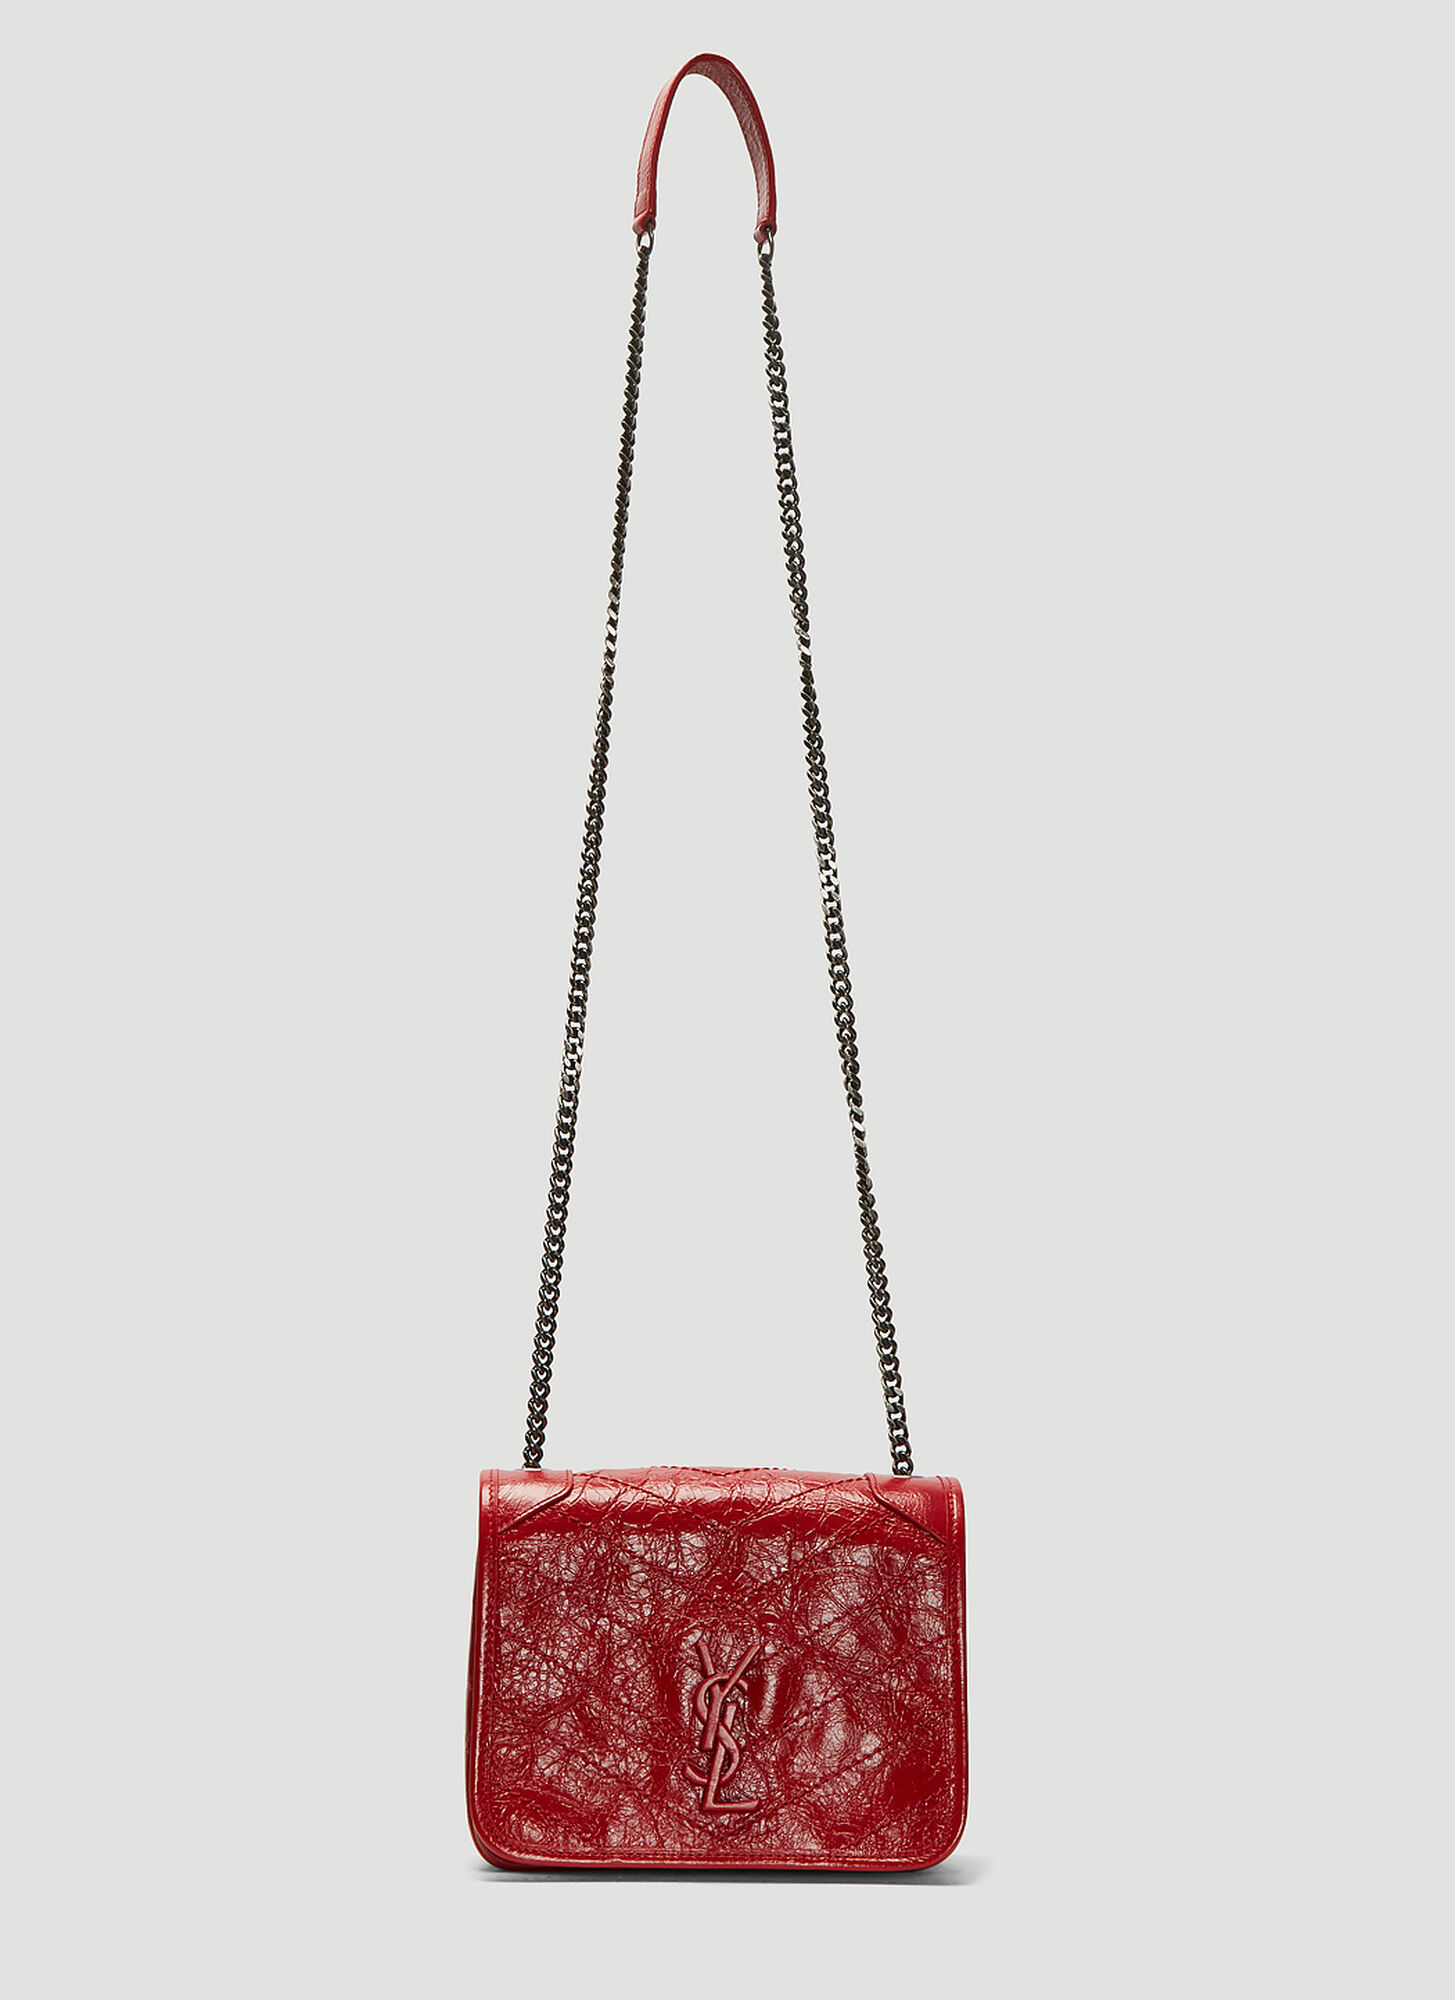 Saint Laurent Vintage Leather Niki Bag in Red